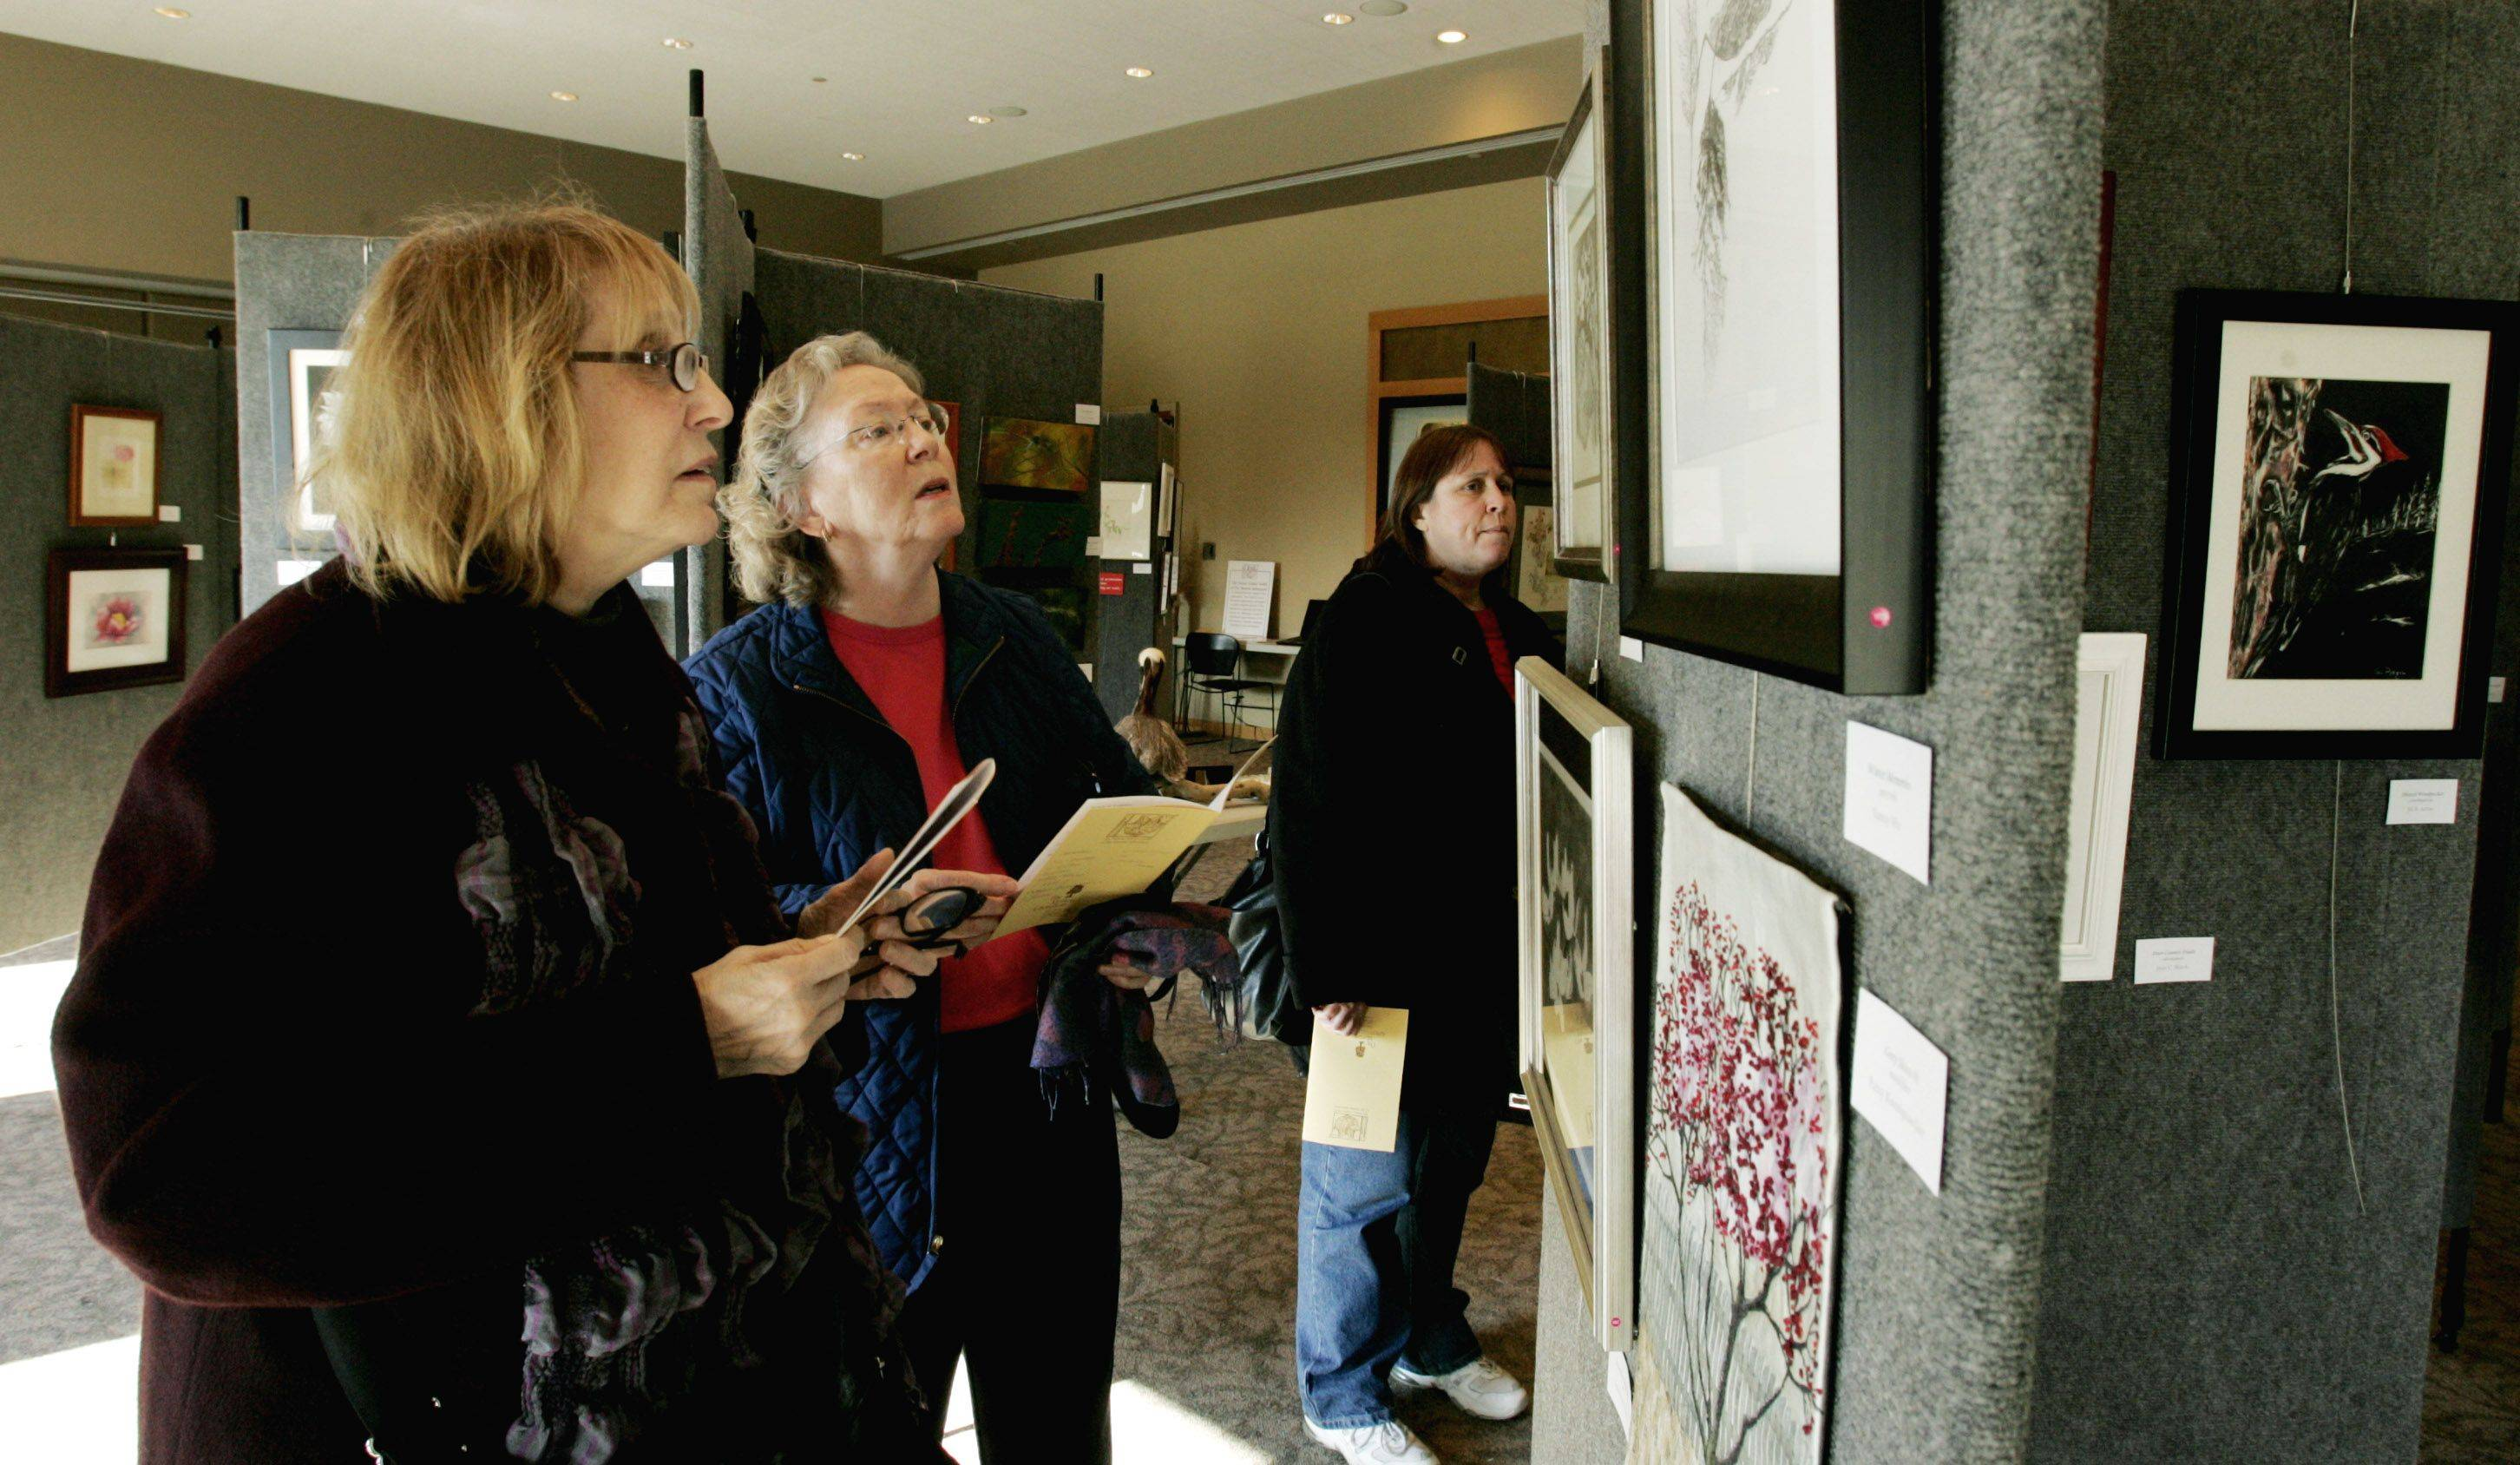 Serna Sheridan of Glencoe, left, and Eileen LaBarre, right, of Palatine check out the Guild Exhibit featuring the works of more than 150 artists Sunday at the Morton Arboretum's Thornhill Education Center in Lisle.